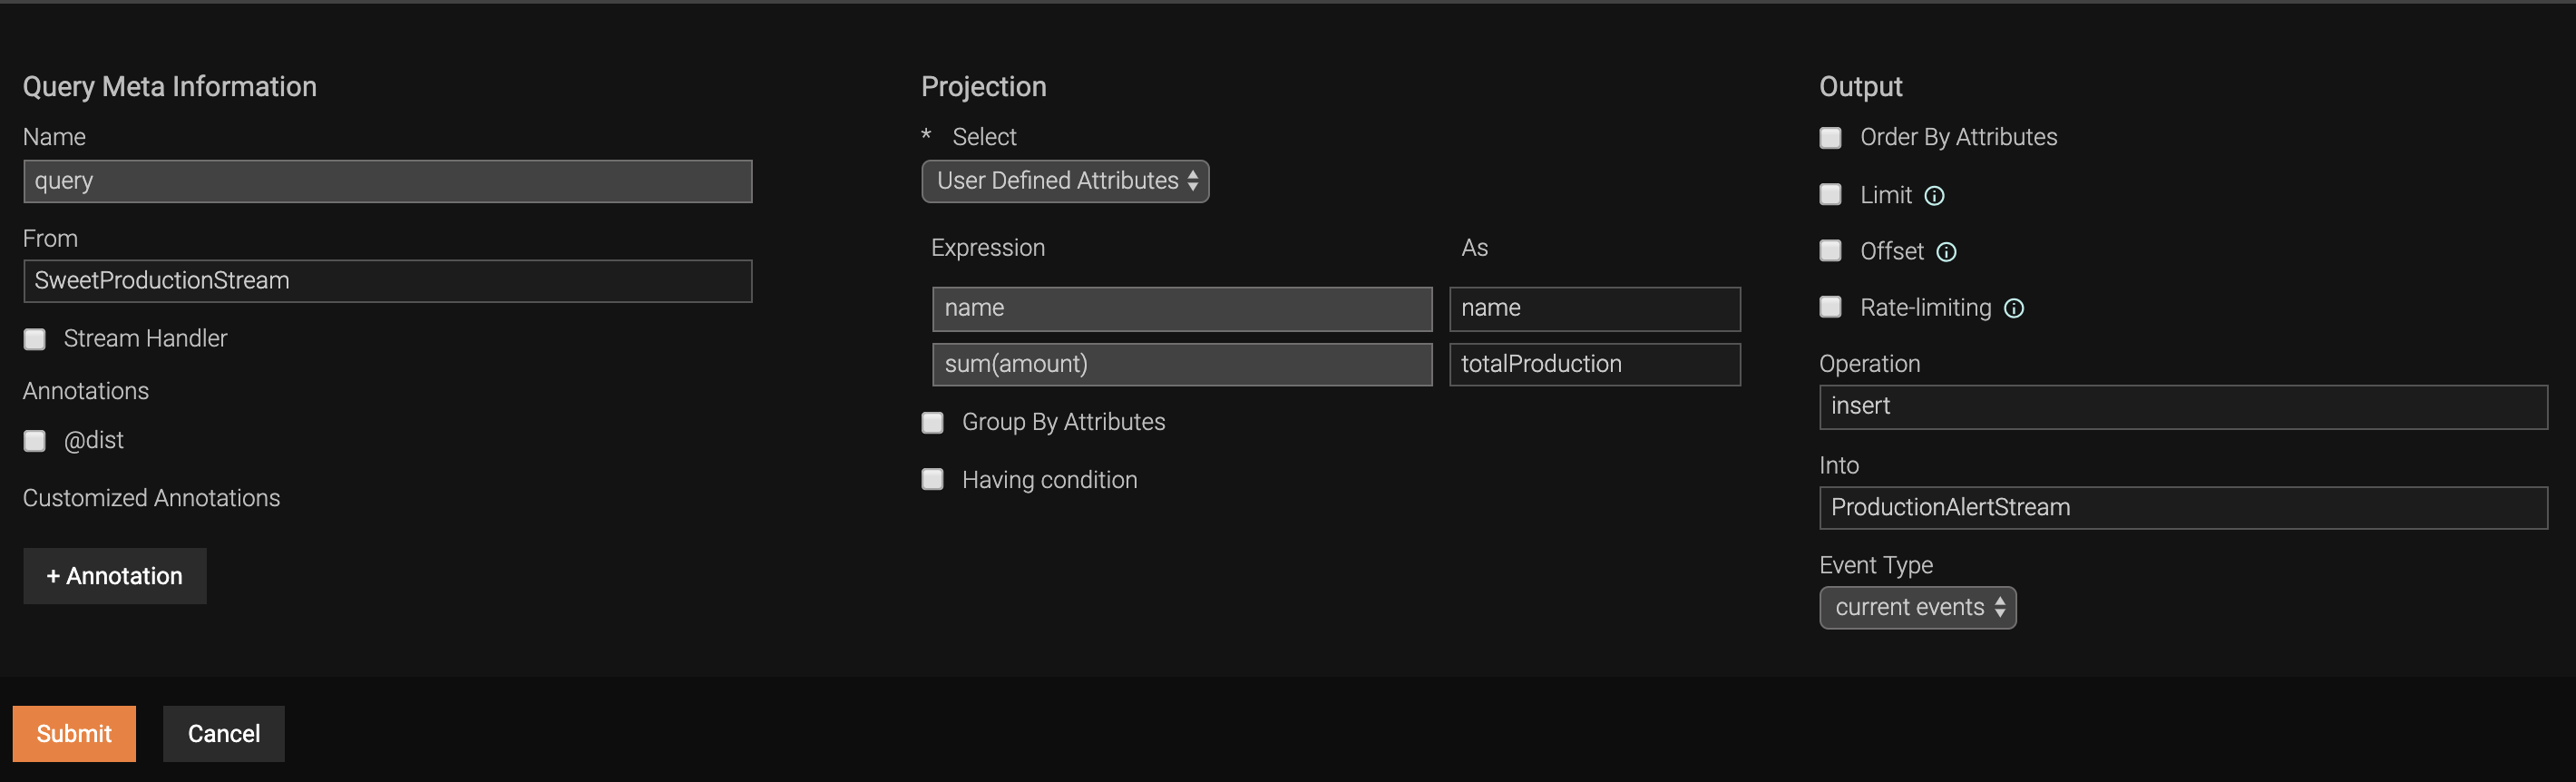 Configuring the projection query